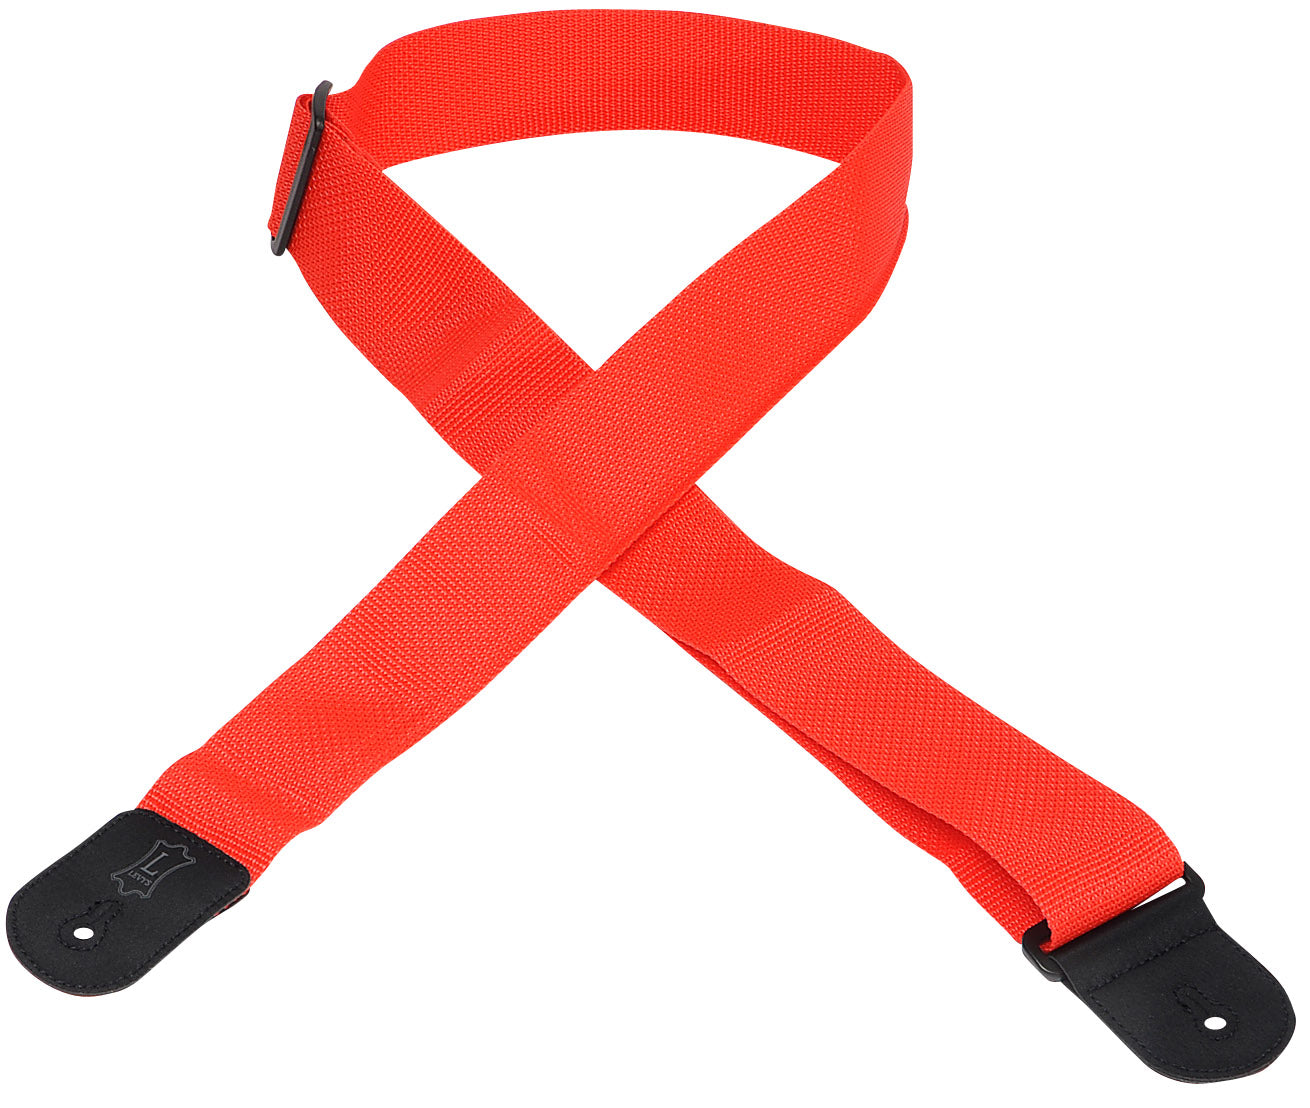 "LEVY'S 2"" POLYPROPYLENE GUITAR STRAP RED"